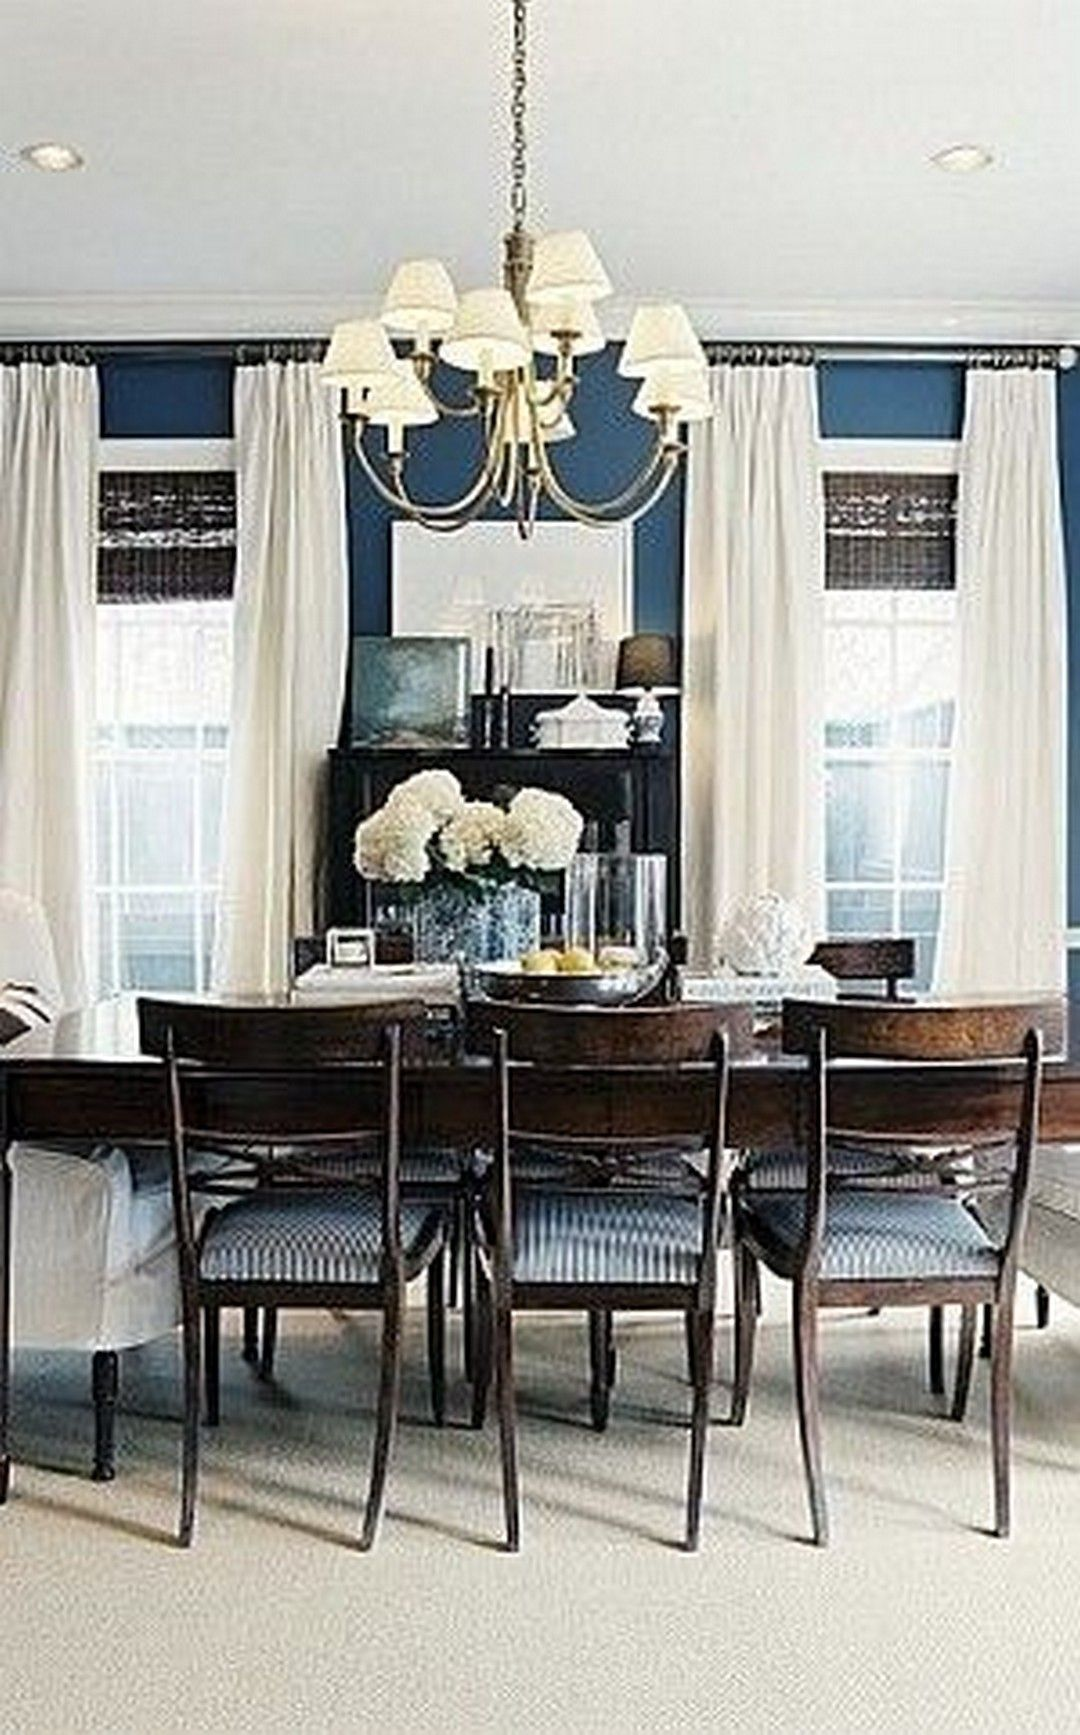 10 Beautiful And Unique Blue Farmhouse Dining Room To Copy Goodnewsarchitecture Dining Room Blue Blue Dining Room Walls Farmhouse Dining Room